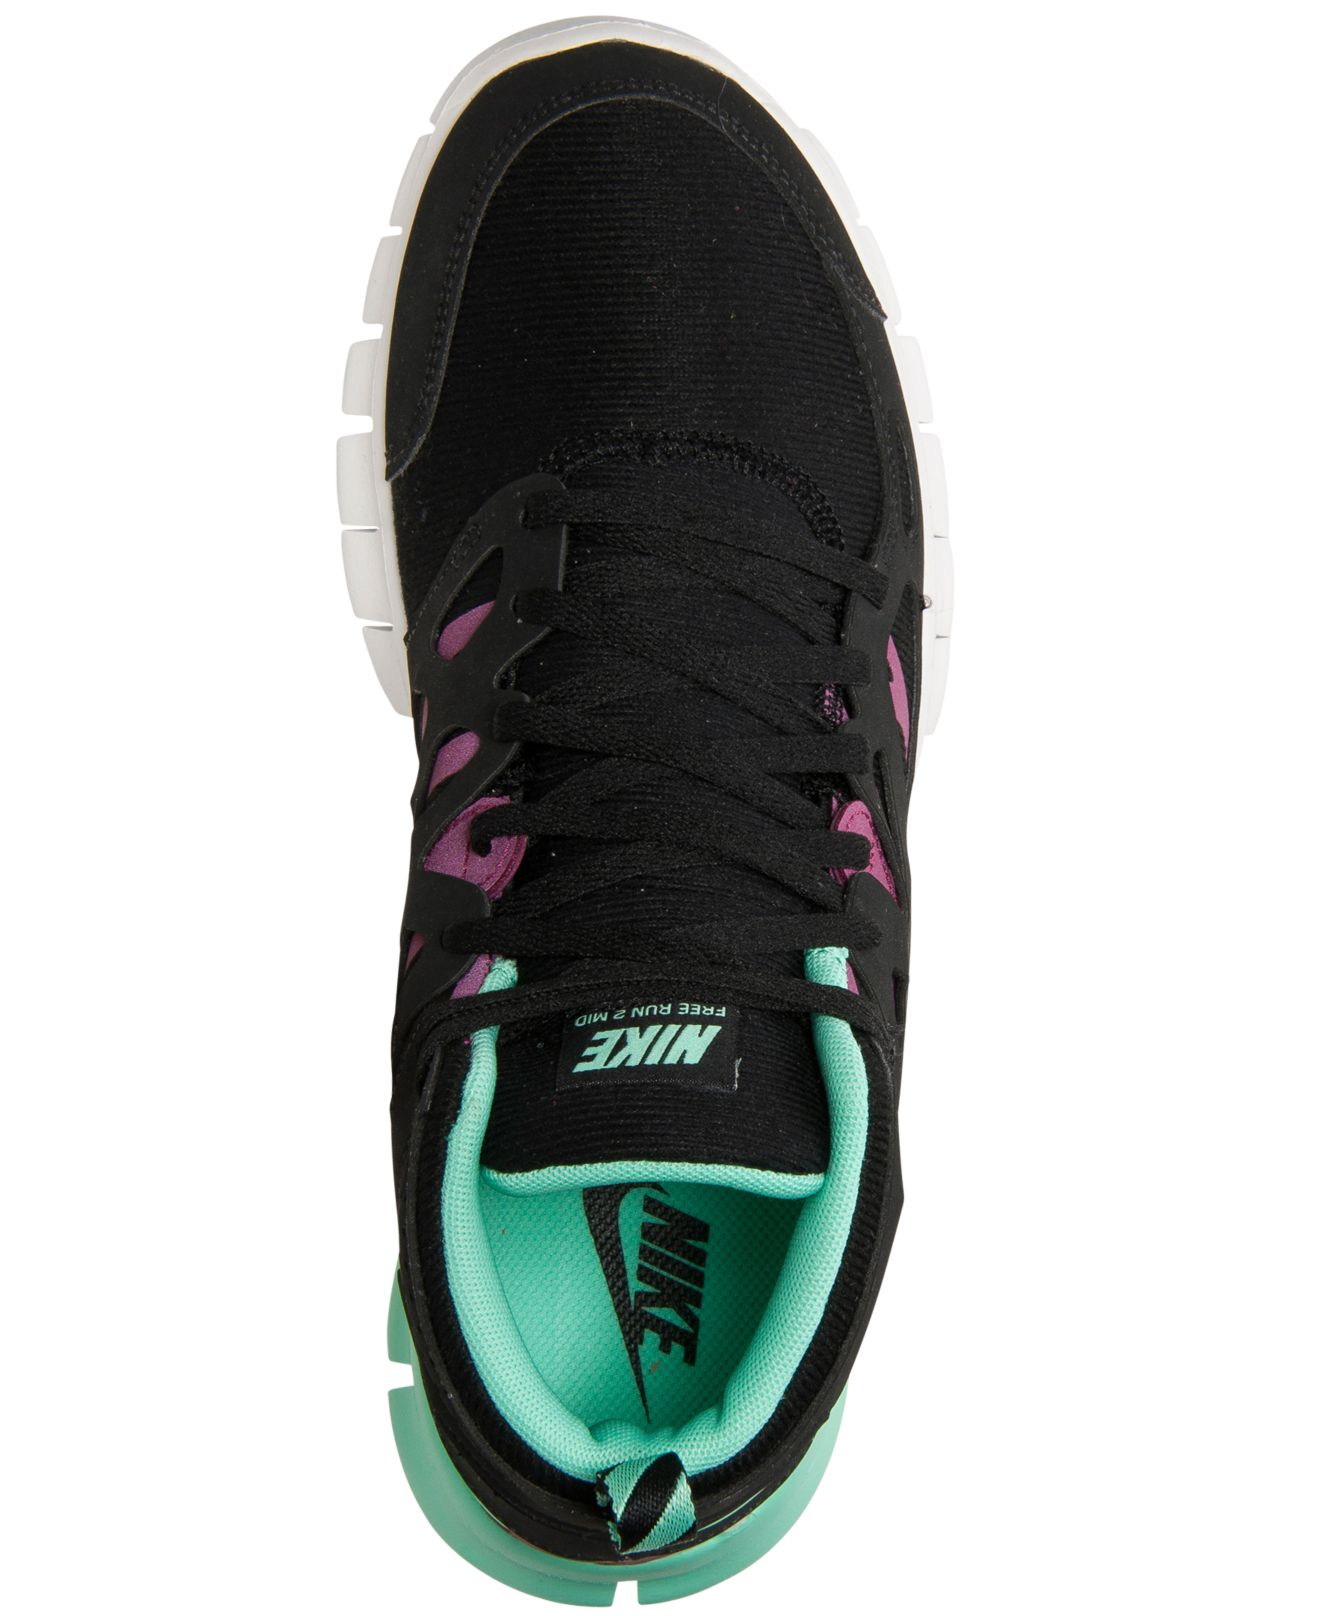 c336e7e531644 ... closeout lyst nike womens free run 2 mid sneakerboot from finish line  in black f9e91 c58aa